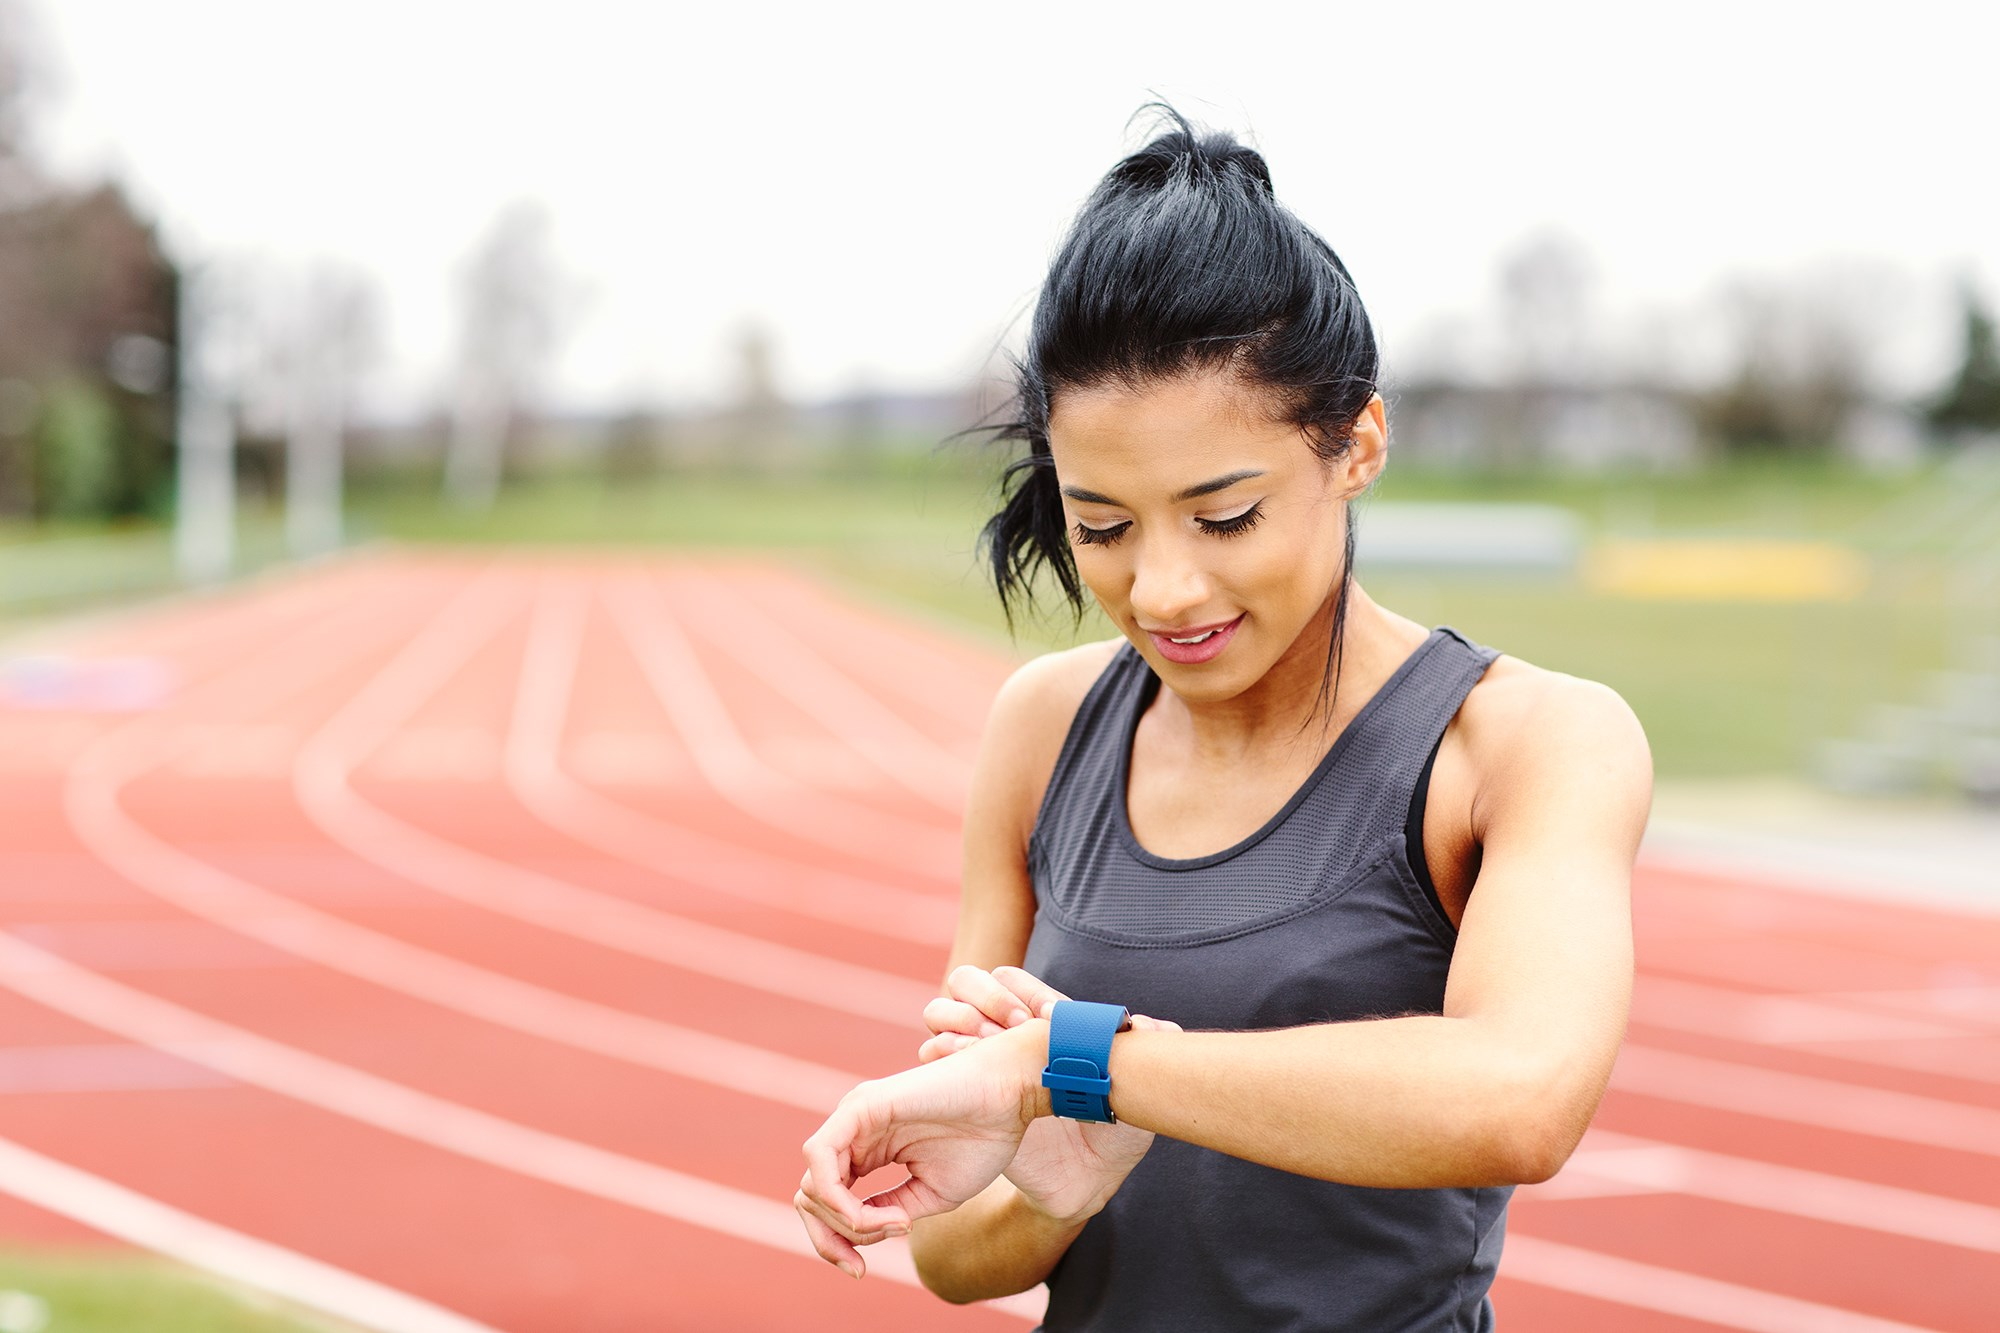 Fitness wearables require self-reporting from the patient but can be useful in oncology care.